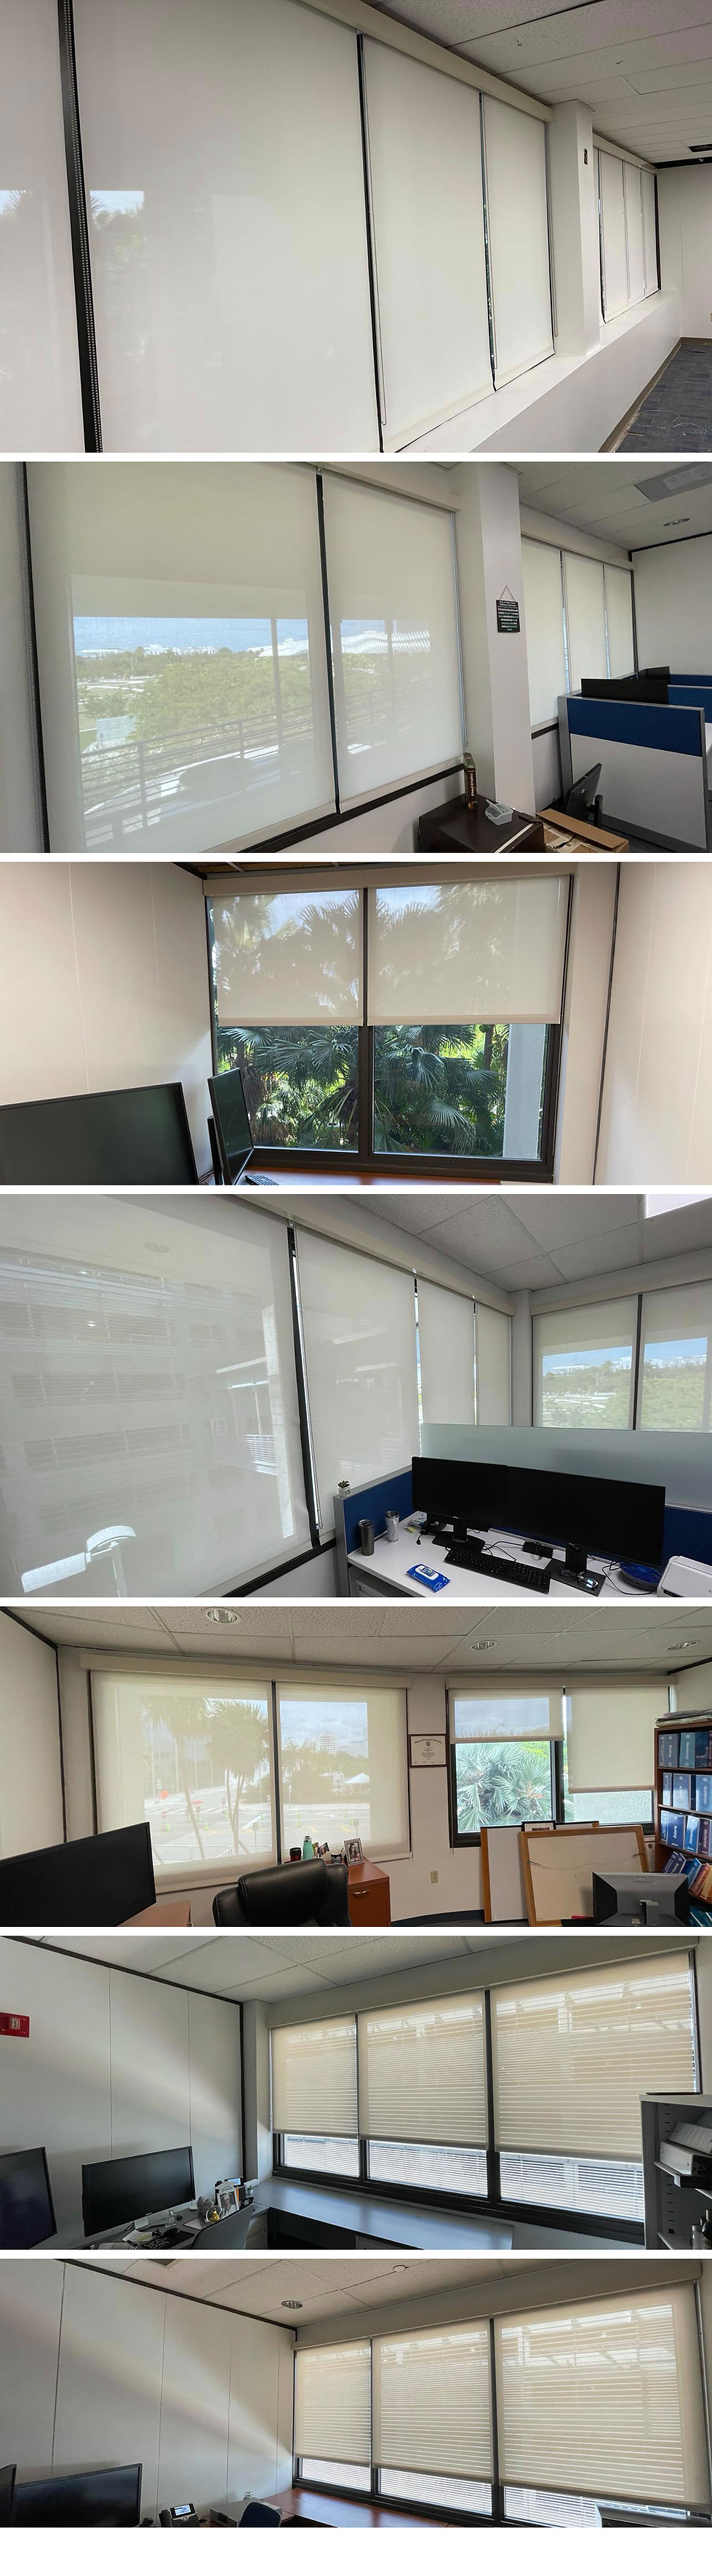 miami beach commercial window coverings.